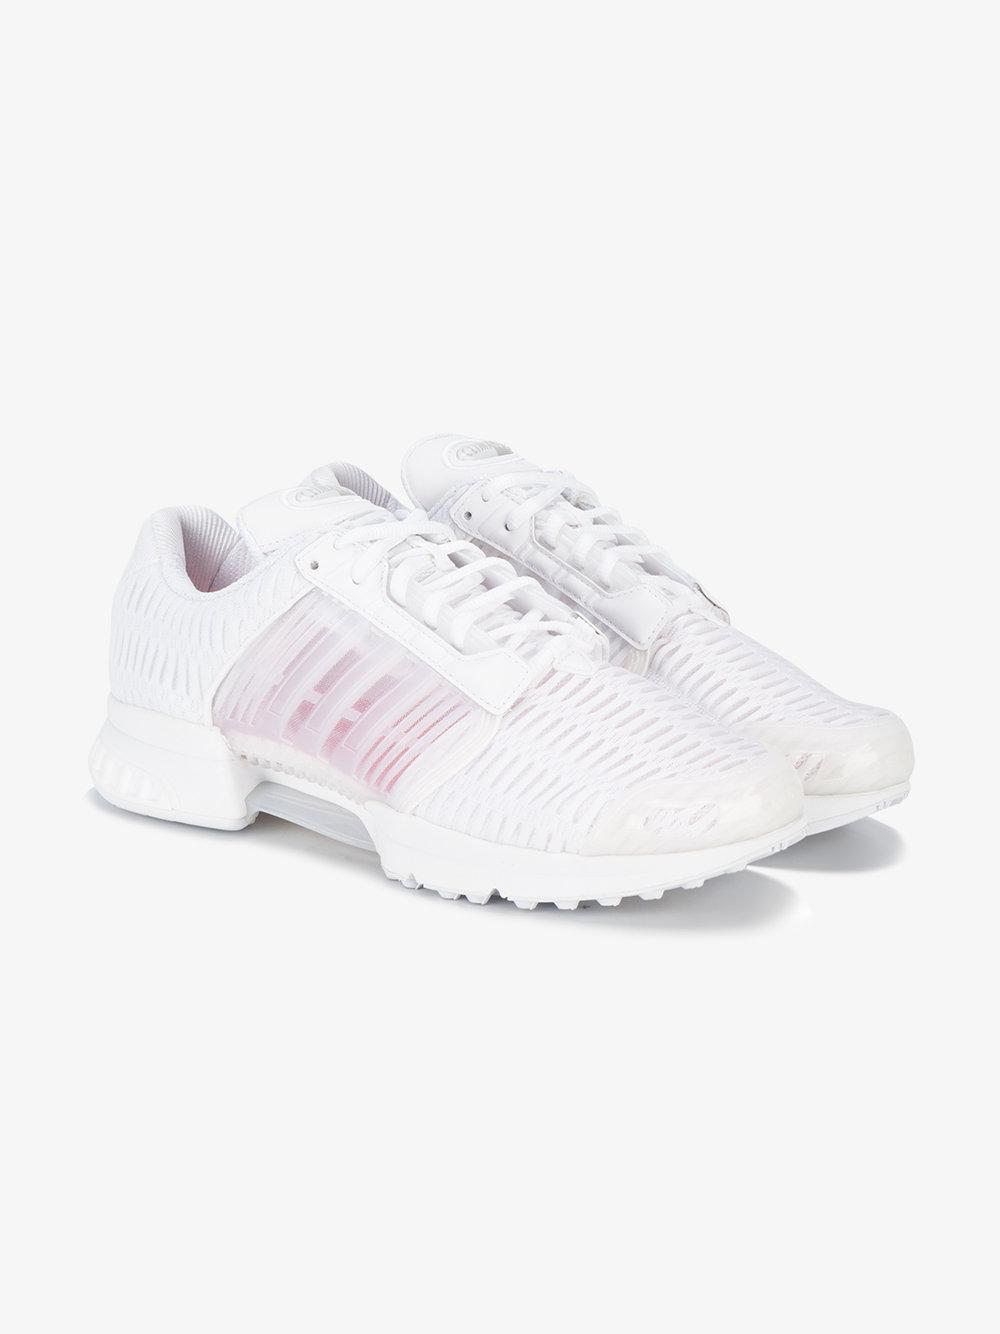 Adidas Climacool 1 Trainers in White for Men - Lyst b65ad2f17